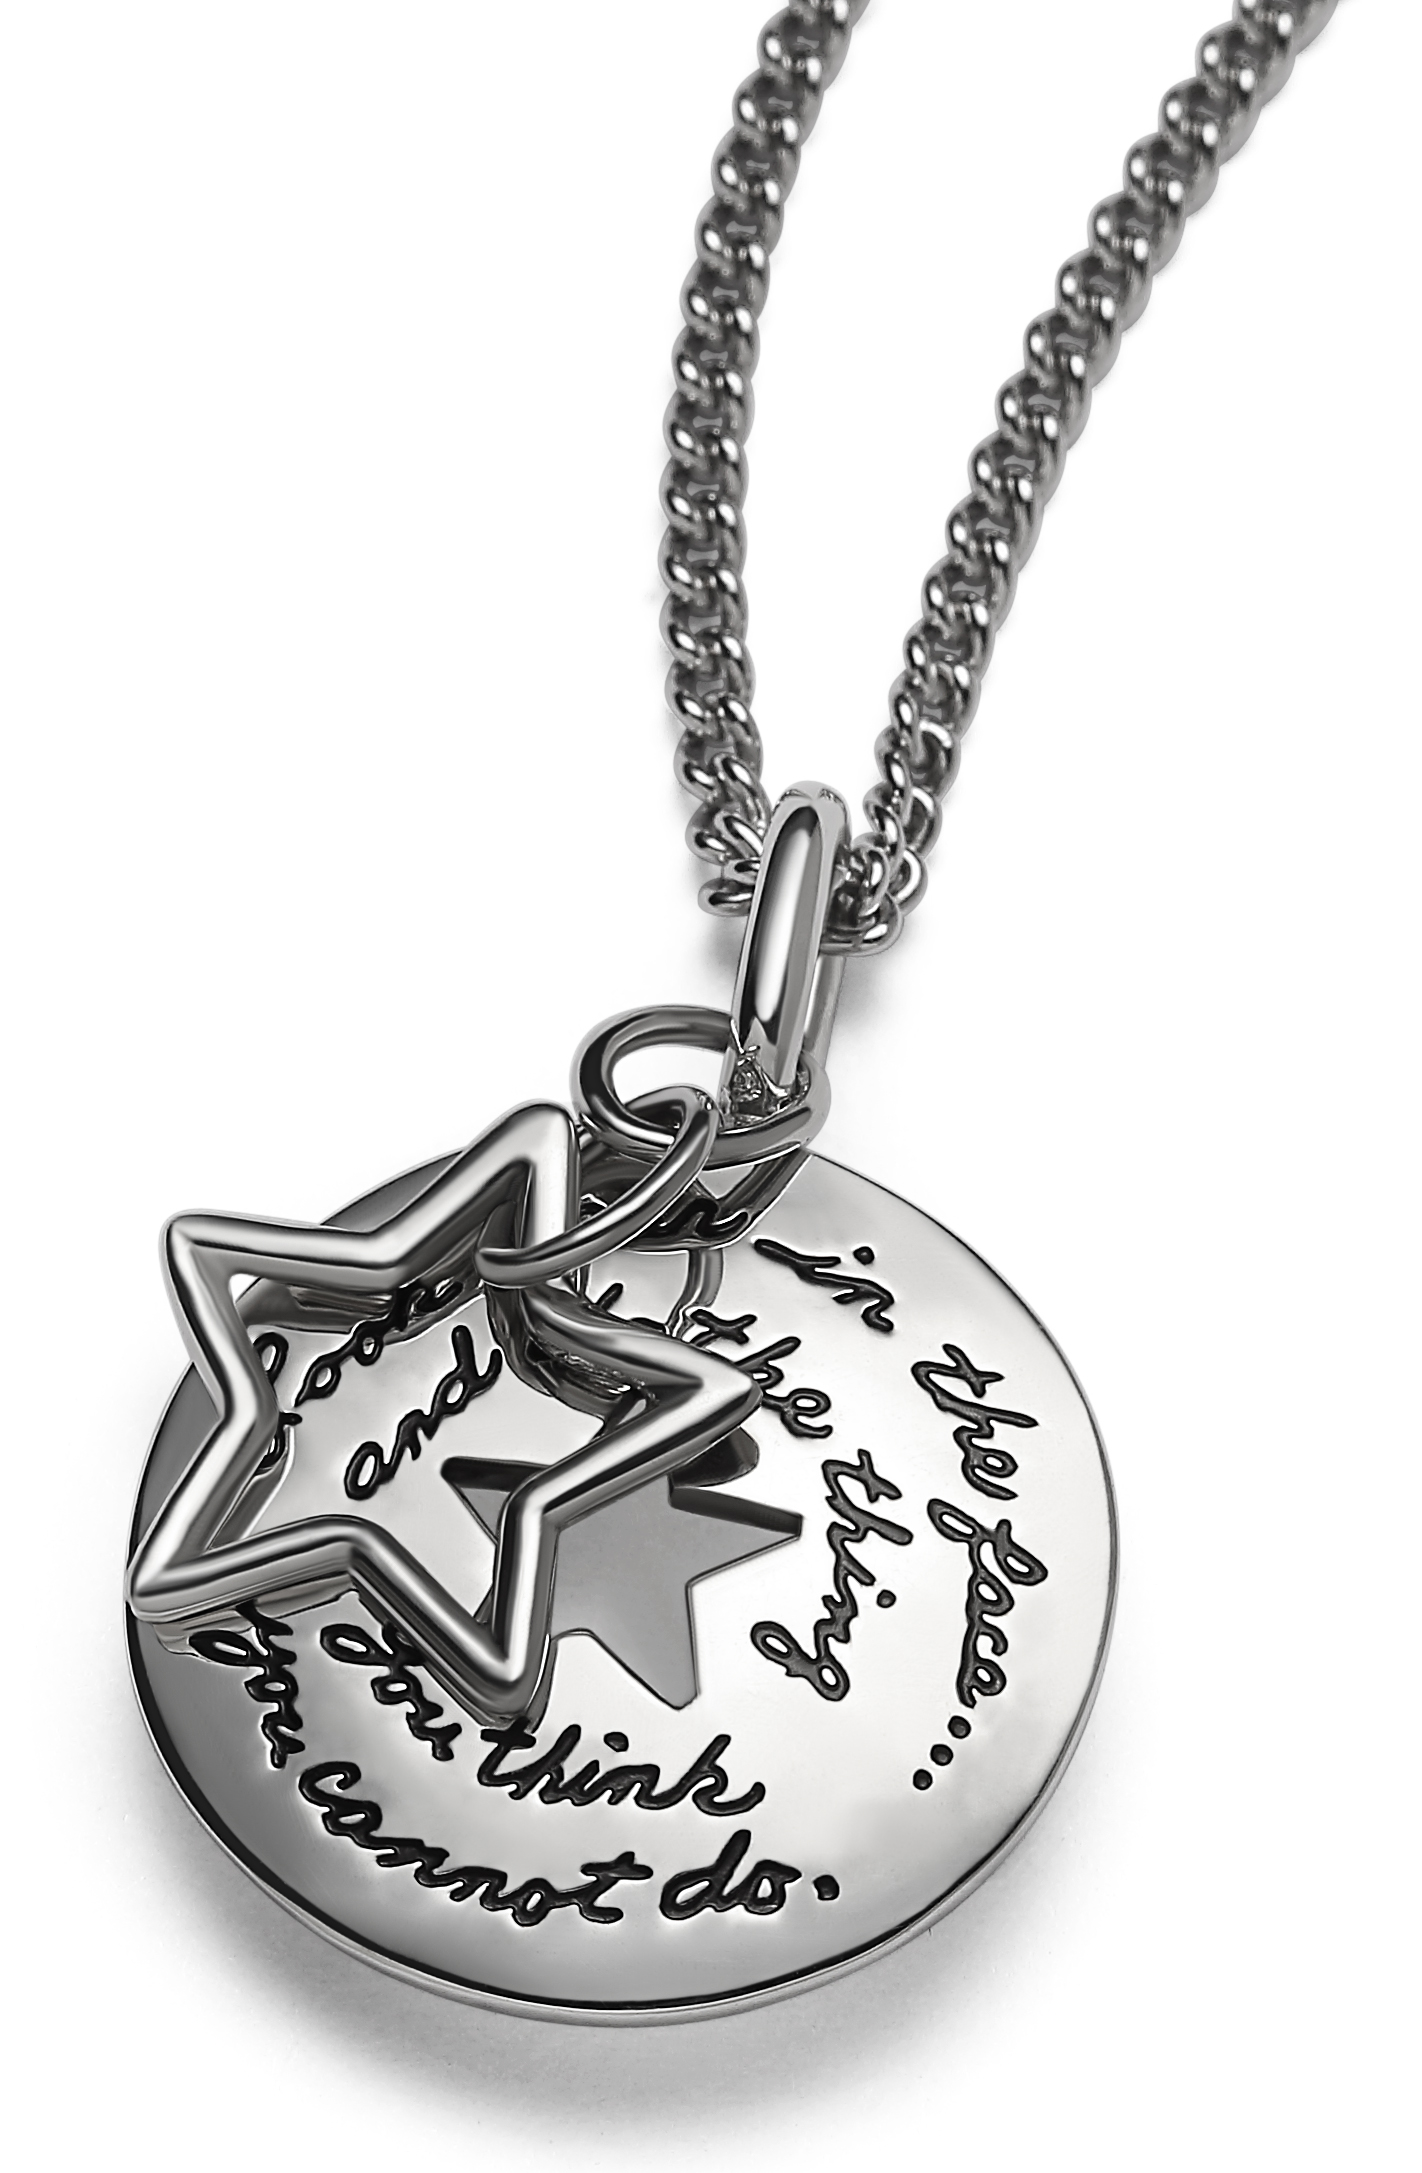 Sterling Silver Circle plaque with a Star cutout in the center and a wire star hanging in front Inspirational engraved quote:  Look fear in the face… and do the thing you think you cannot do. - Eleanor Roosevelt